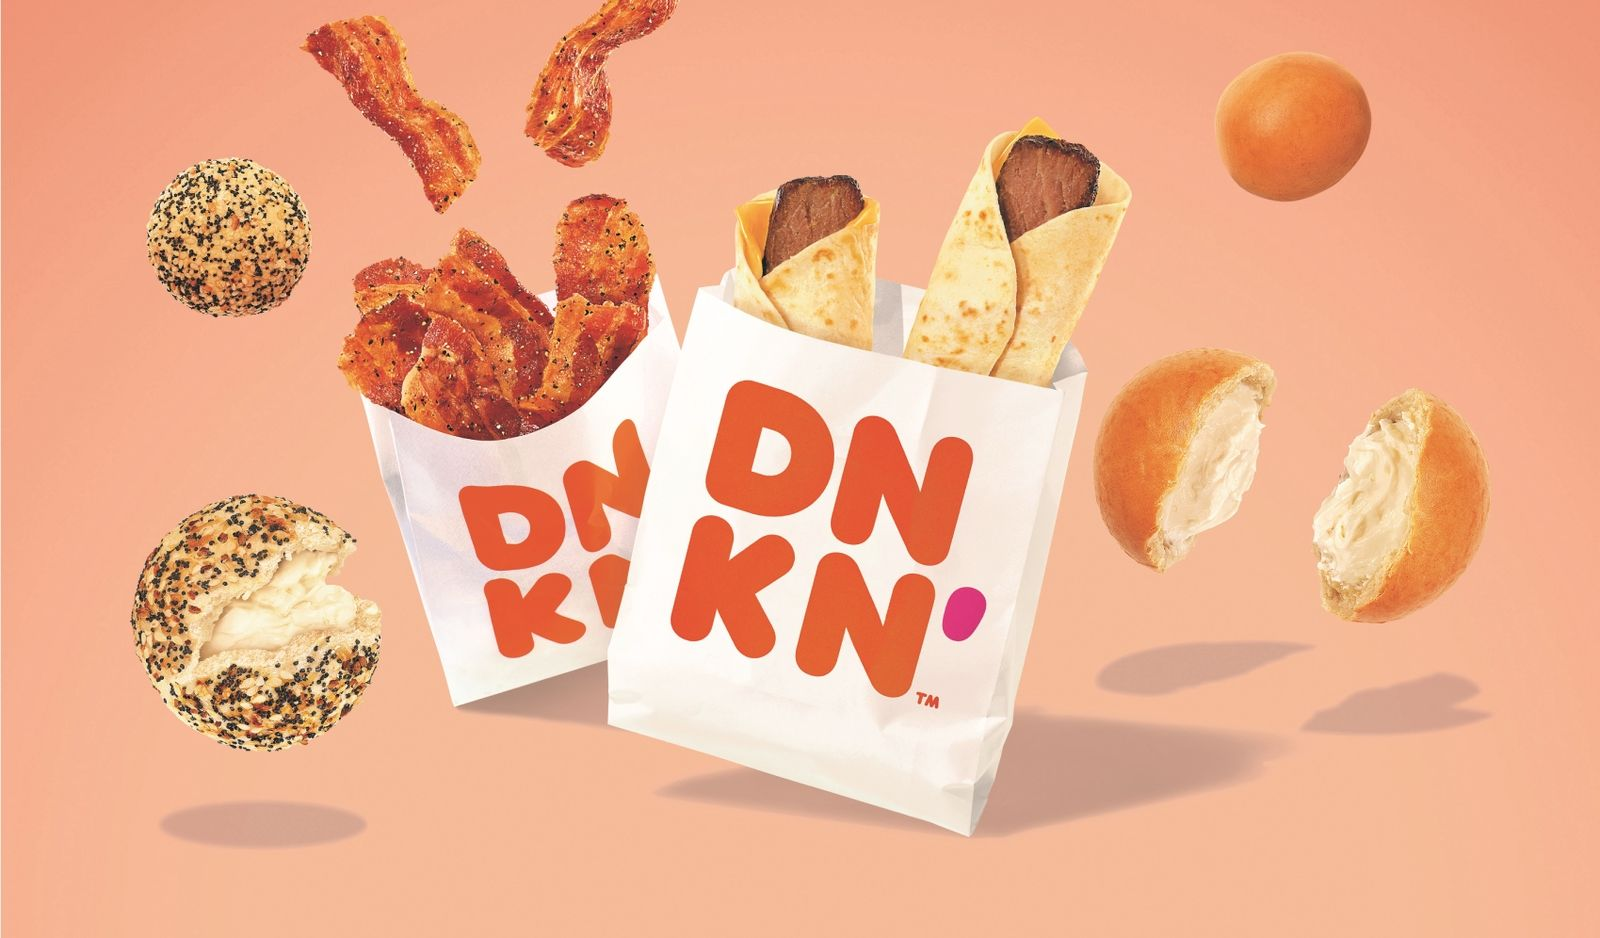 Answering the Call for Fall: Dunkin's Signature Pumpkin Spice Latte and Fall Menu Arrive August 19